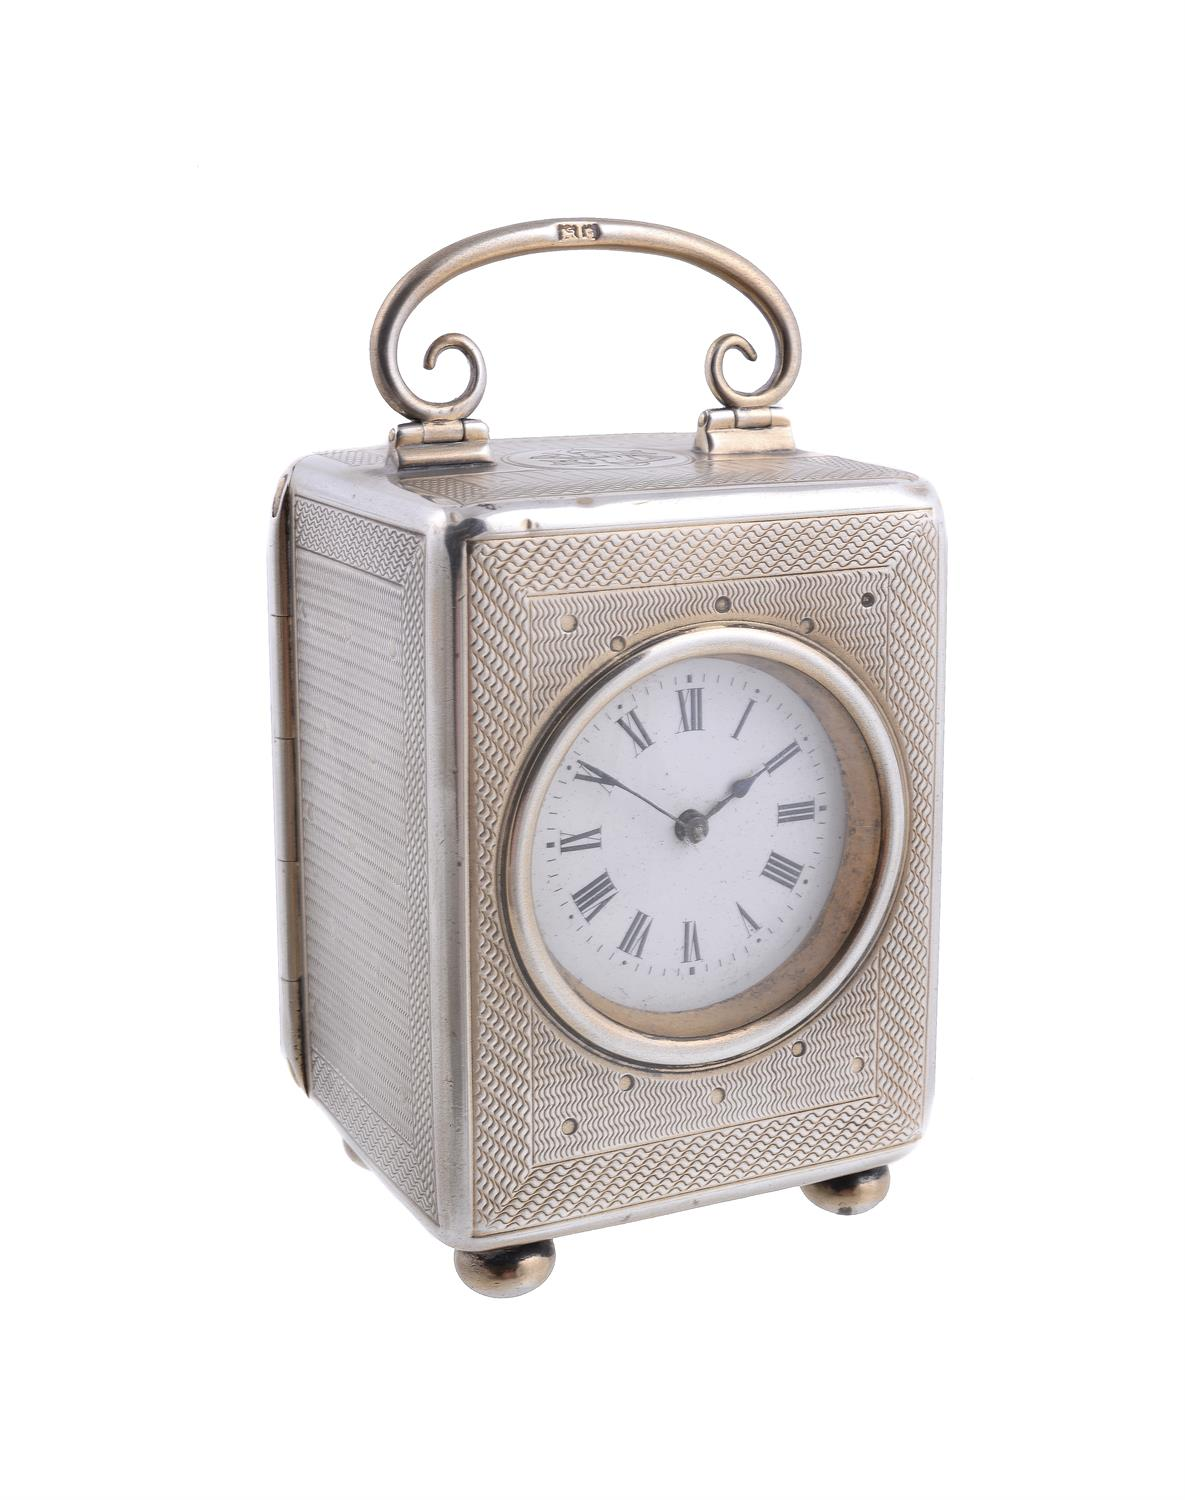 Lot 50 - An Edwardian silver carriage clock by John Pound & Co.